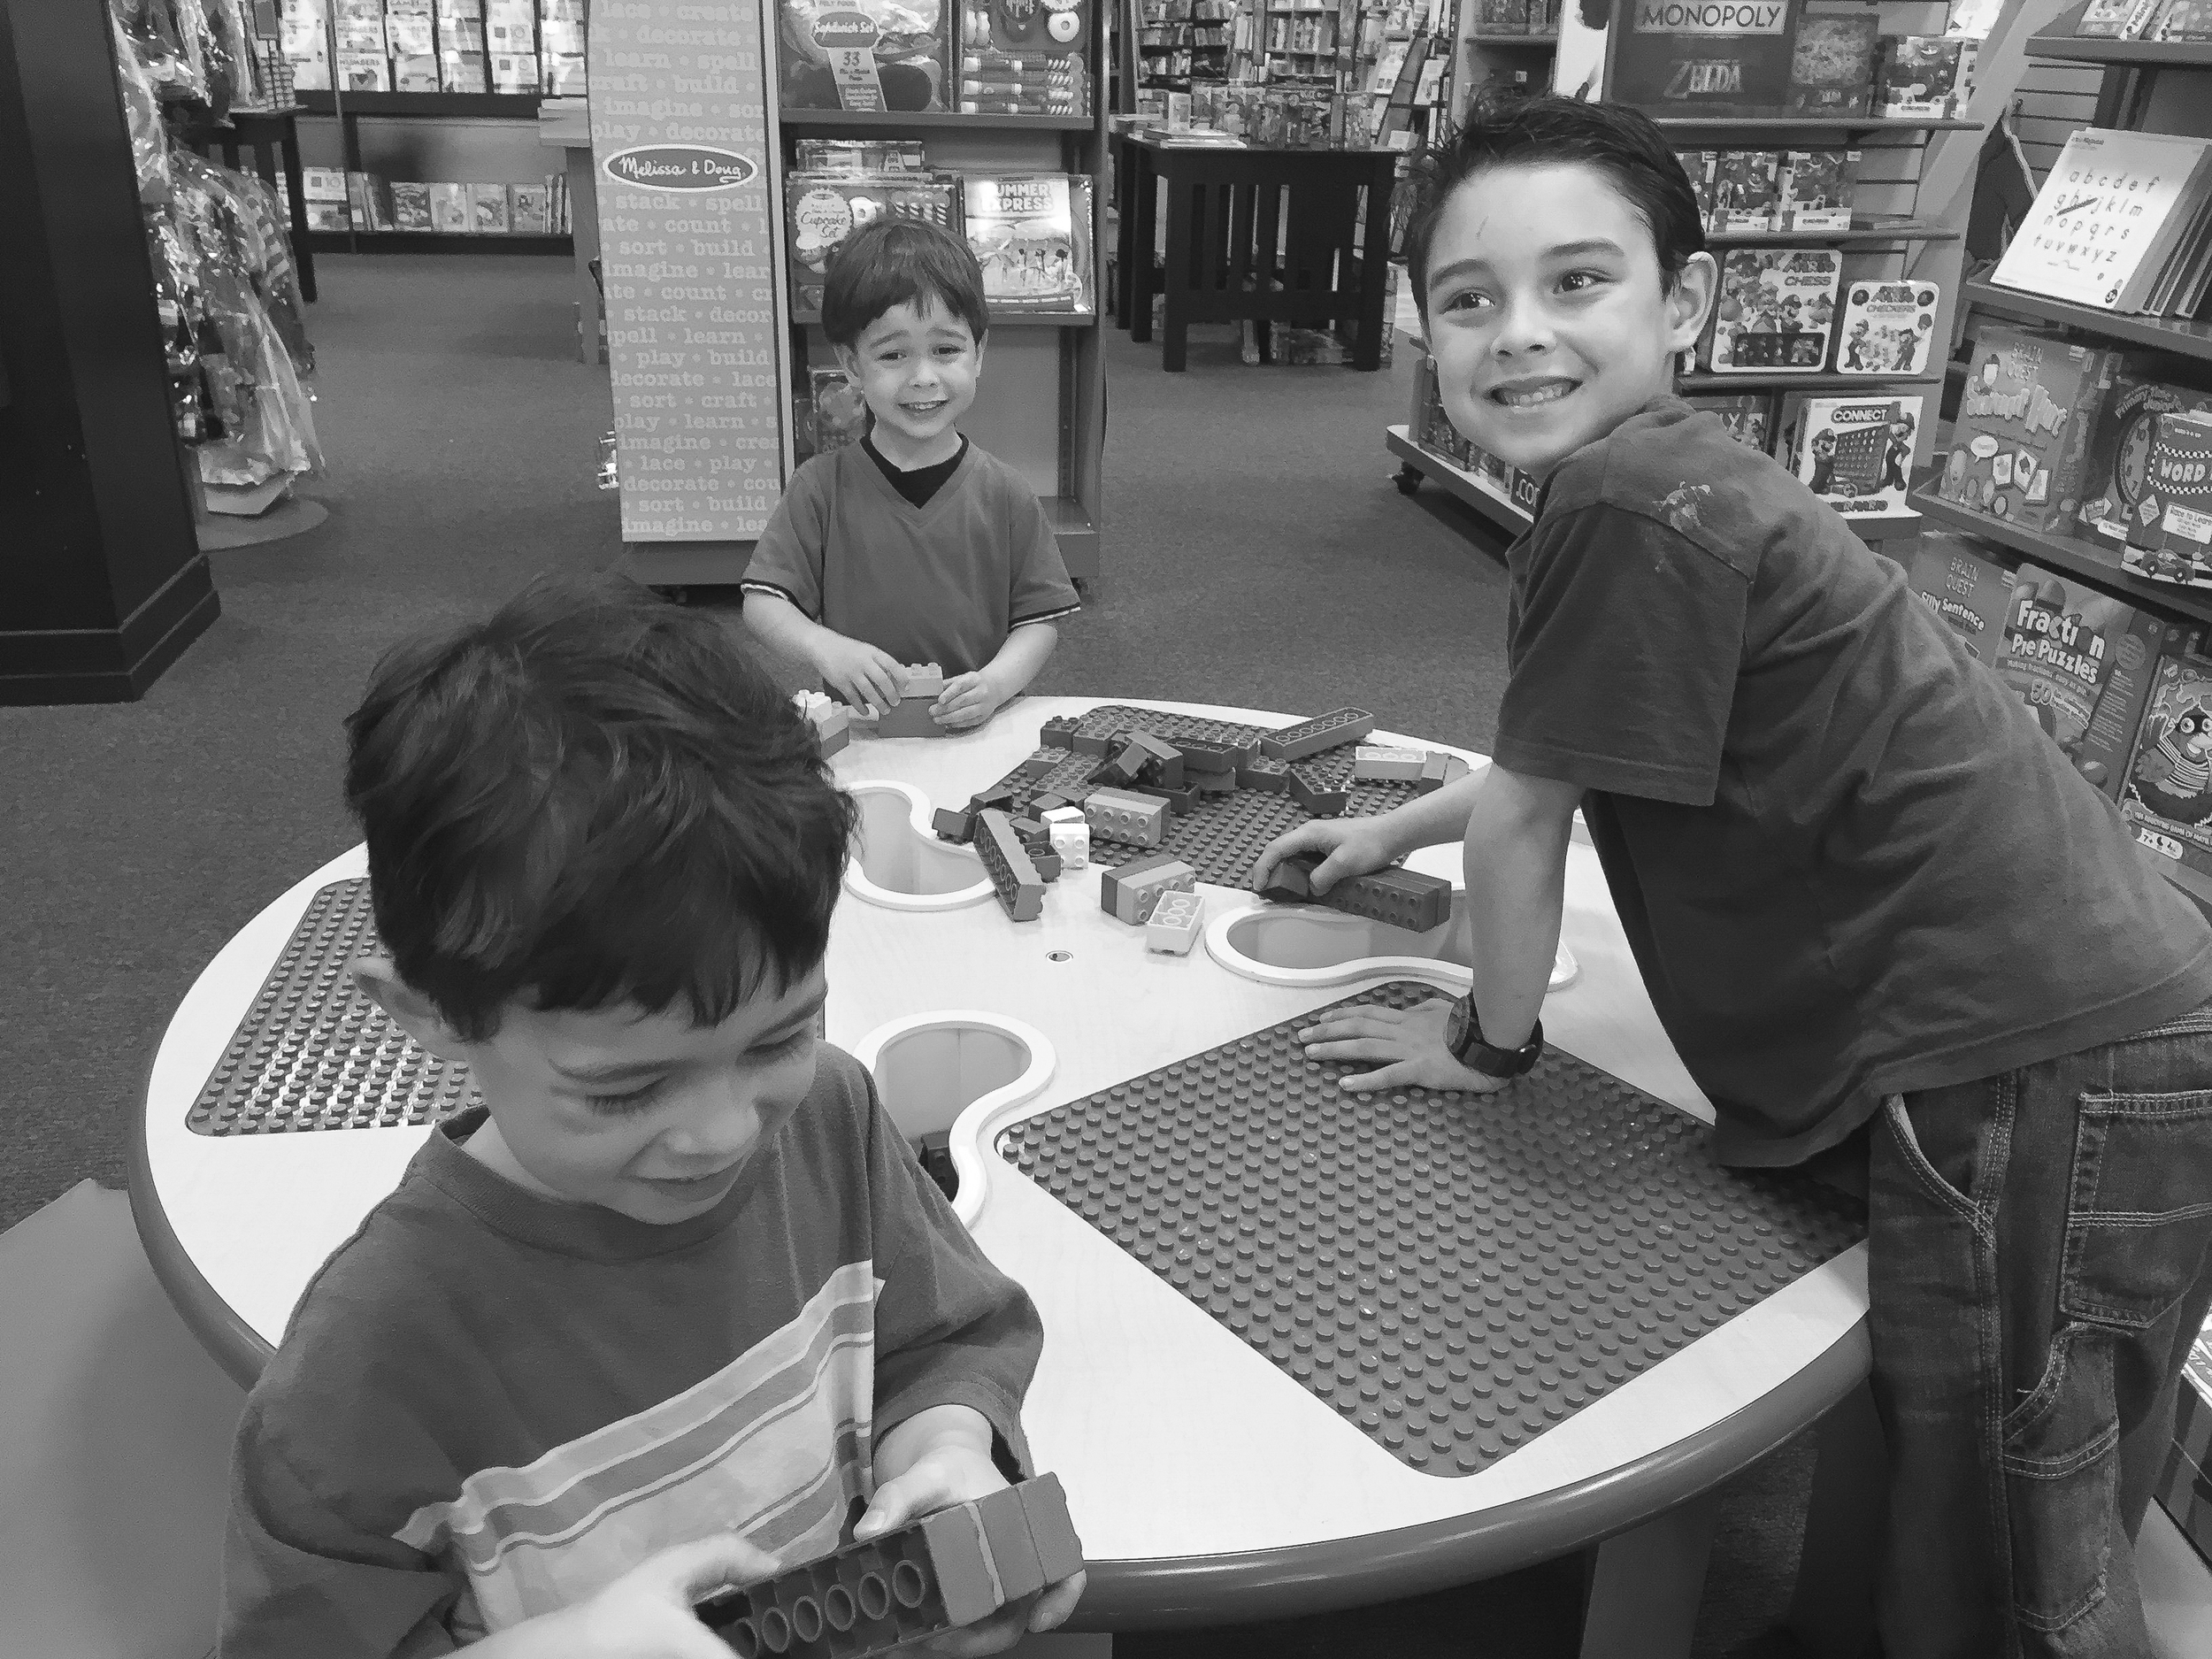 2015 - the boys enjoying playing around at Barnes and Noble bookstore before deciding on what to buy. The girls in the meantime were trying to decide on buying a Bible case, a book, or saving up for something else.